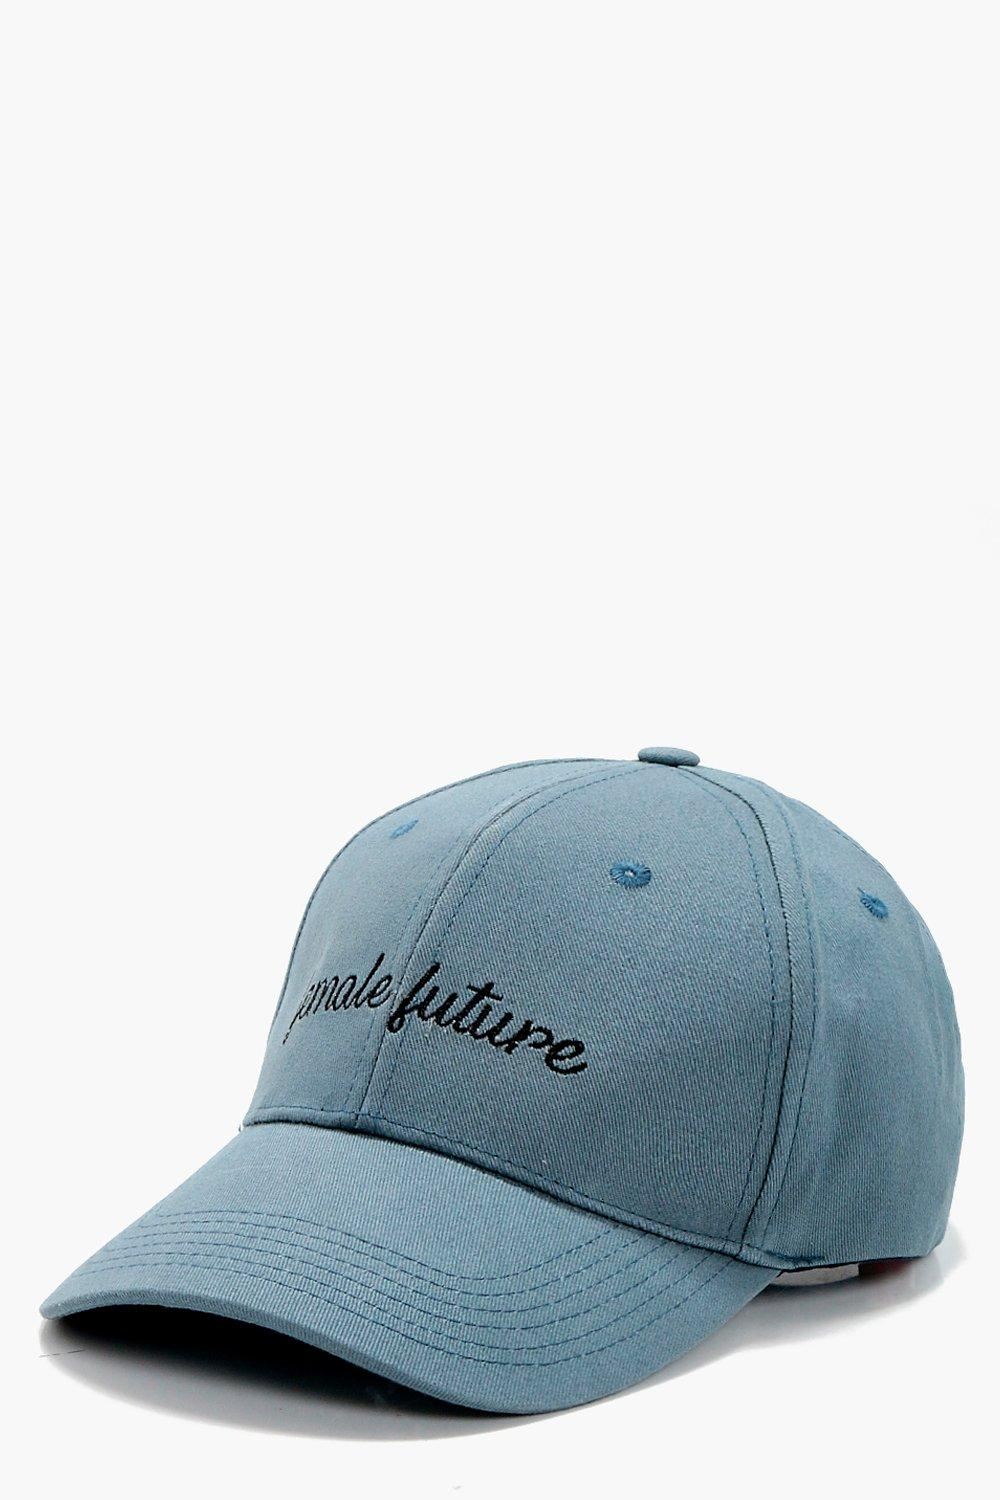 Female Future Slogan Cap - blue - Millie Female Fu